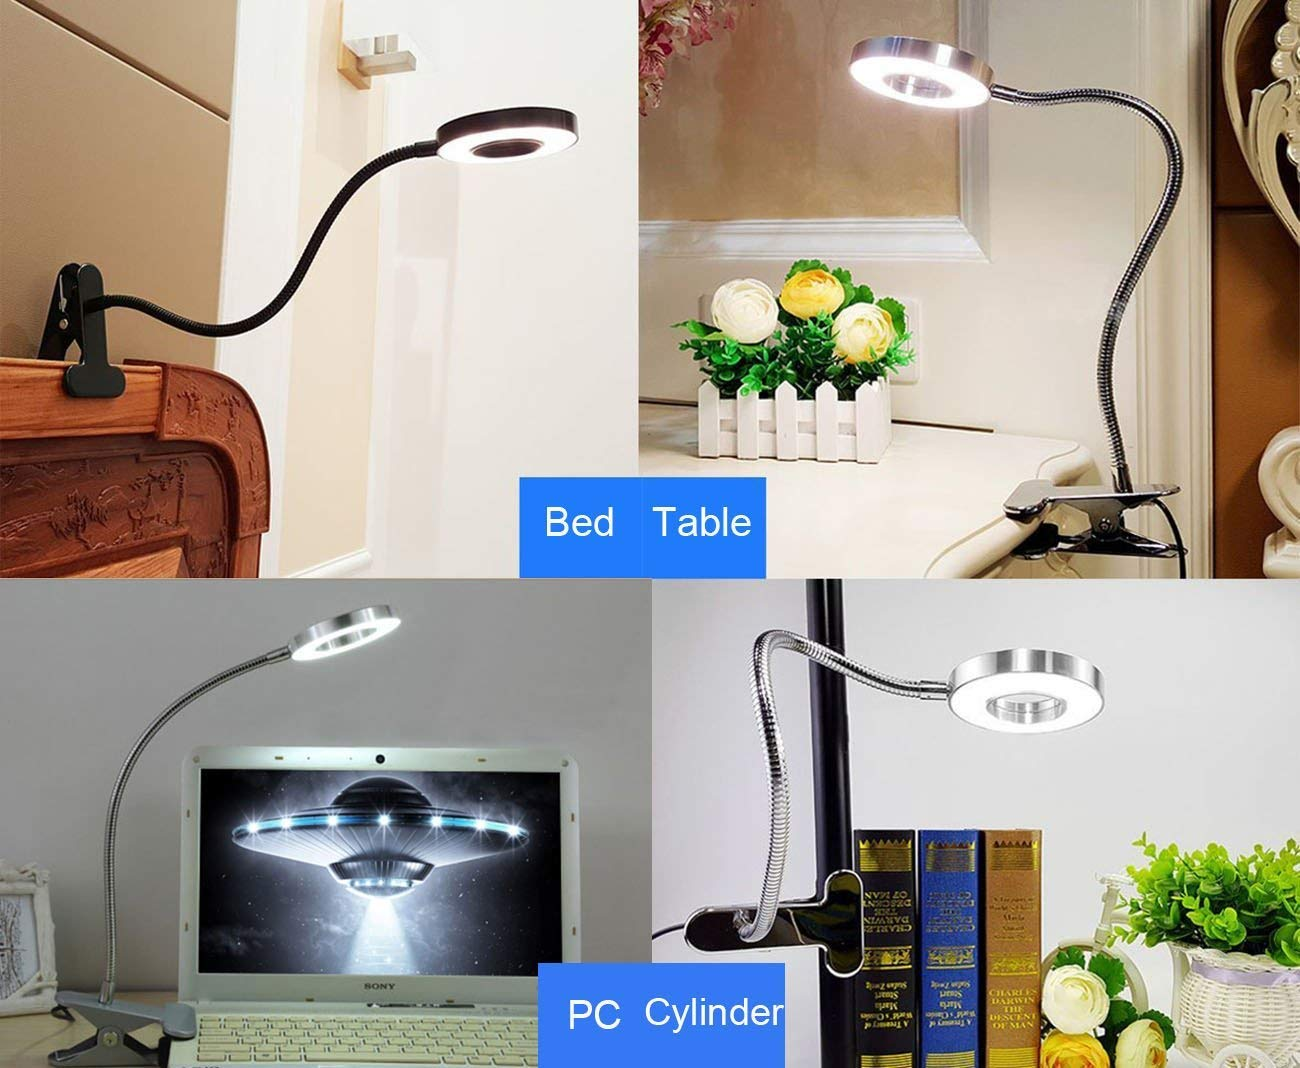 6W LED USB Dimmable Clip on Reading Light,Clip Laptop Lamp for Book,Piano,Bed Headboard,Desk,Eye-care 2 Light Color Switchable, Adapter Included(Black) by W-LITE (Image #3)